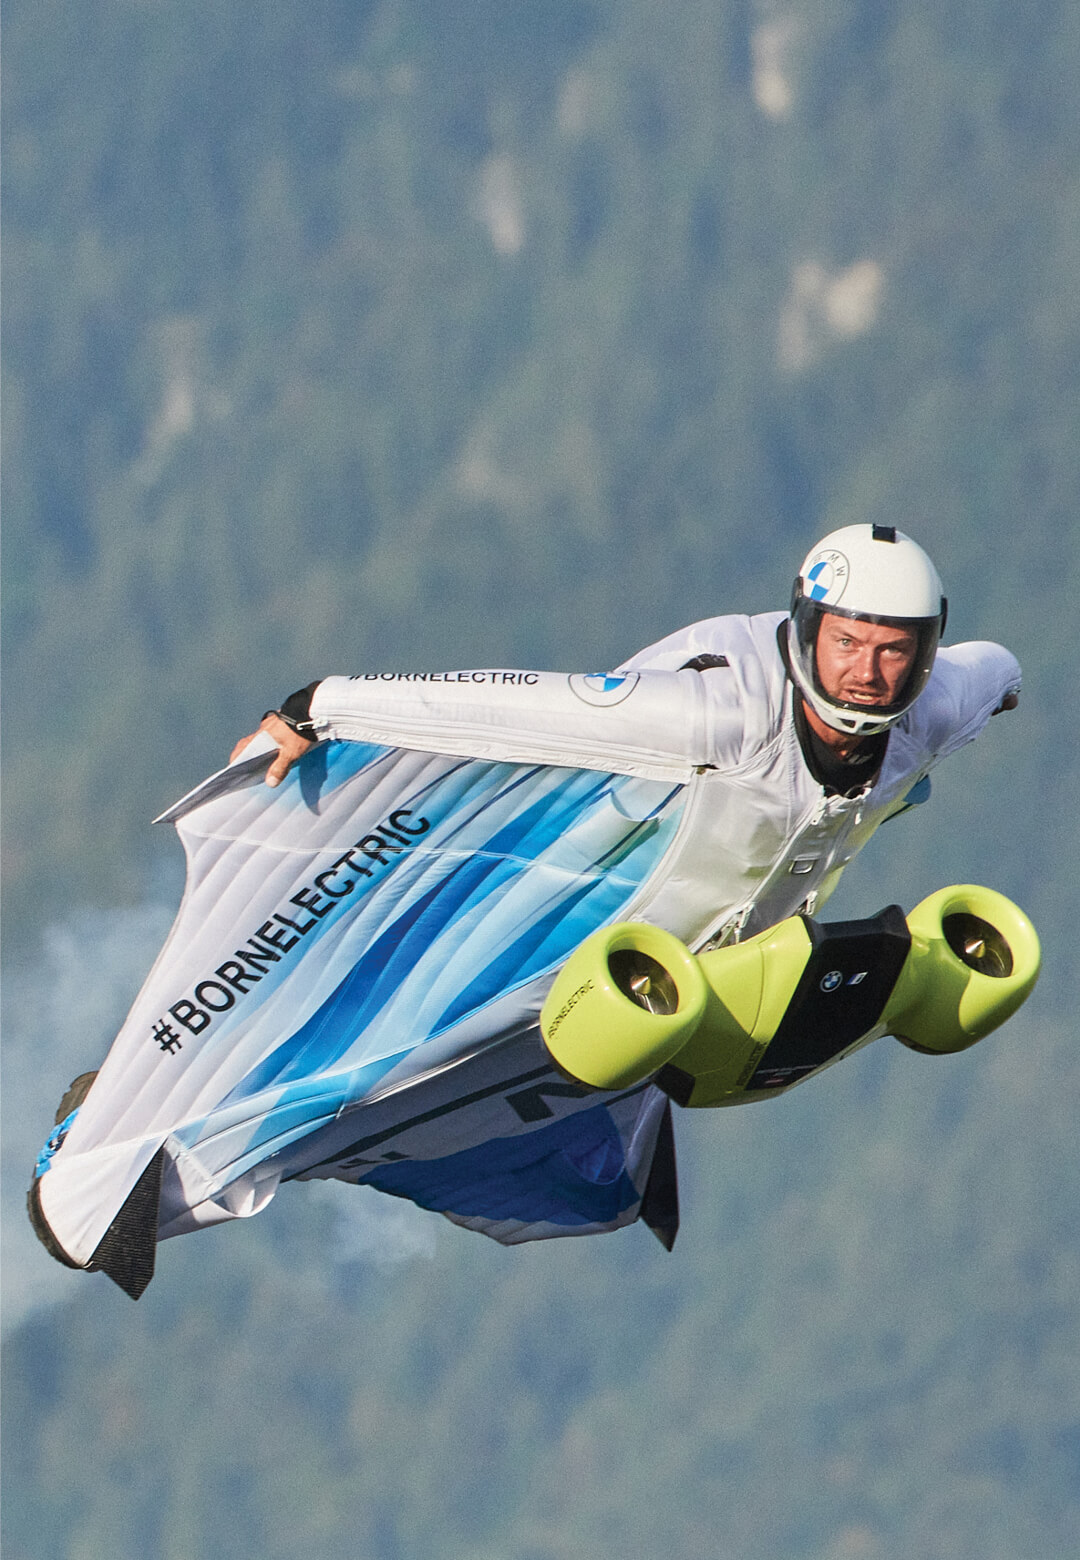 Austrian sky-diver and base-jumper Peter Salzmann in the electrified wingsuit's maiden flight | Electrified Wingsuit | BMWi, Designworks, Peter Salzmann | STIRworld